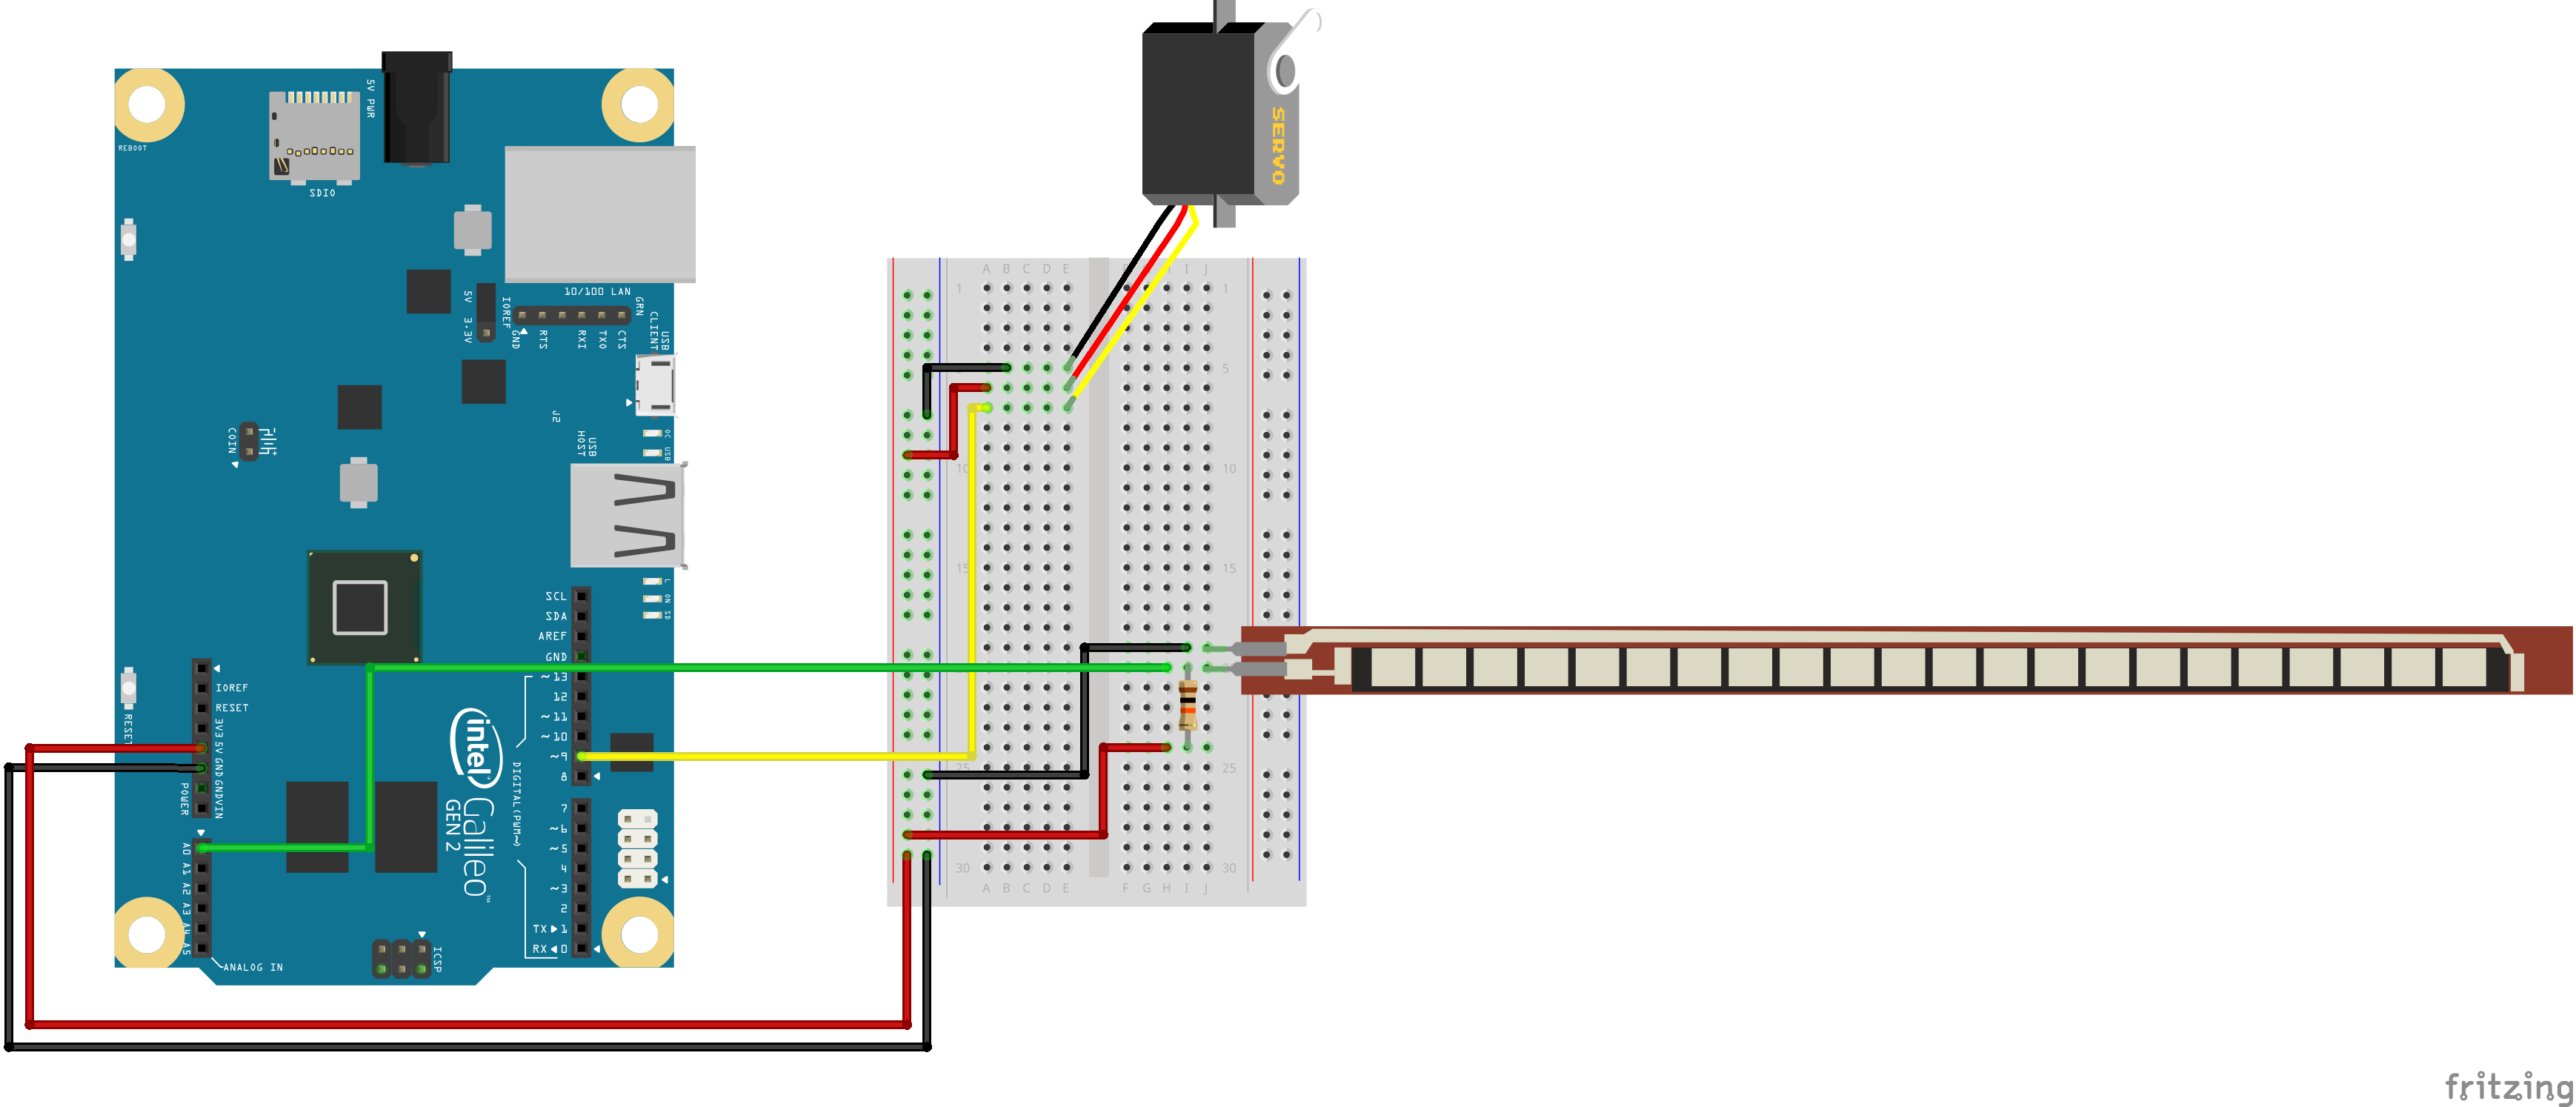 Galileo Experiment Guide 12 Volt Led Flasher Circuit Click For Details Fritzing Flex Sensor